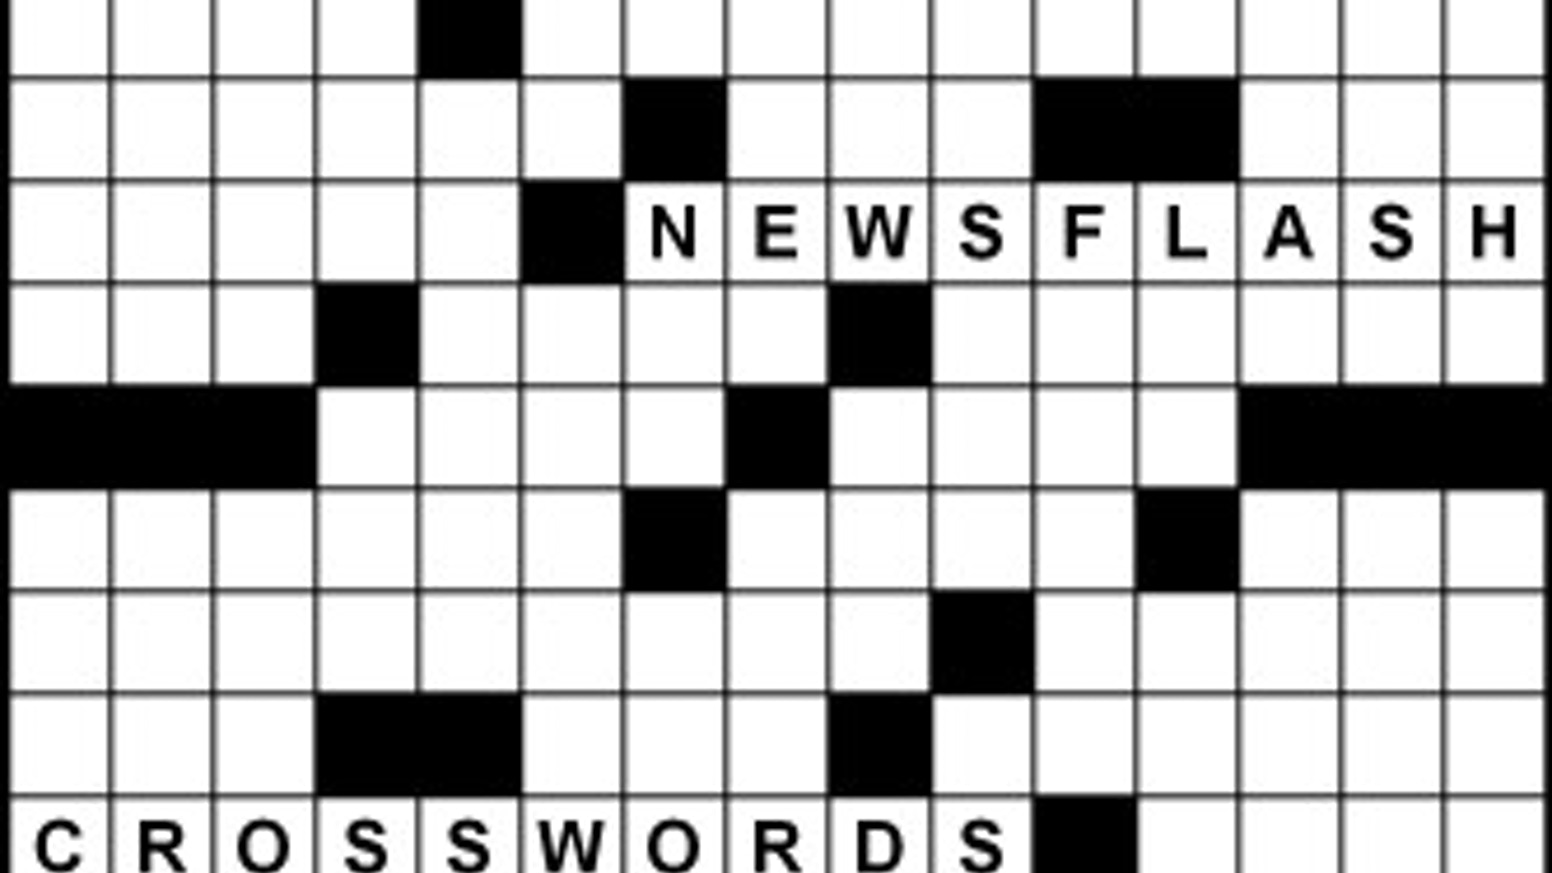 2016-17 Fireball Newsflash Crosswords by Peter Gordon